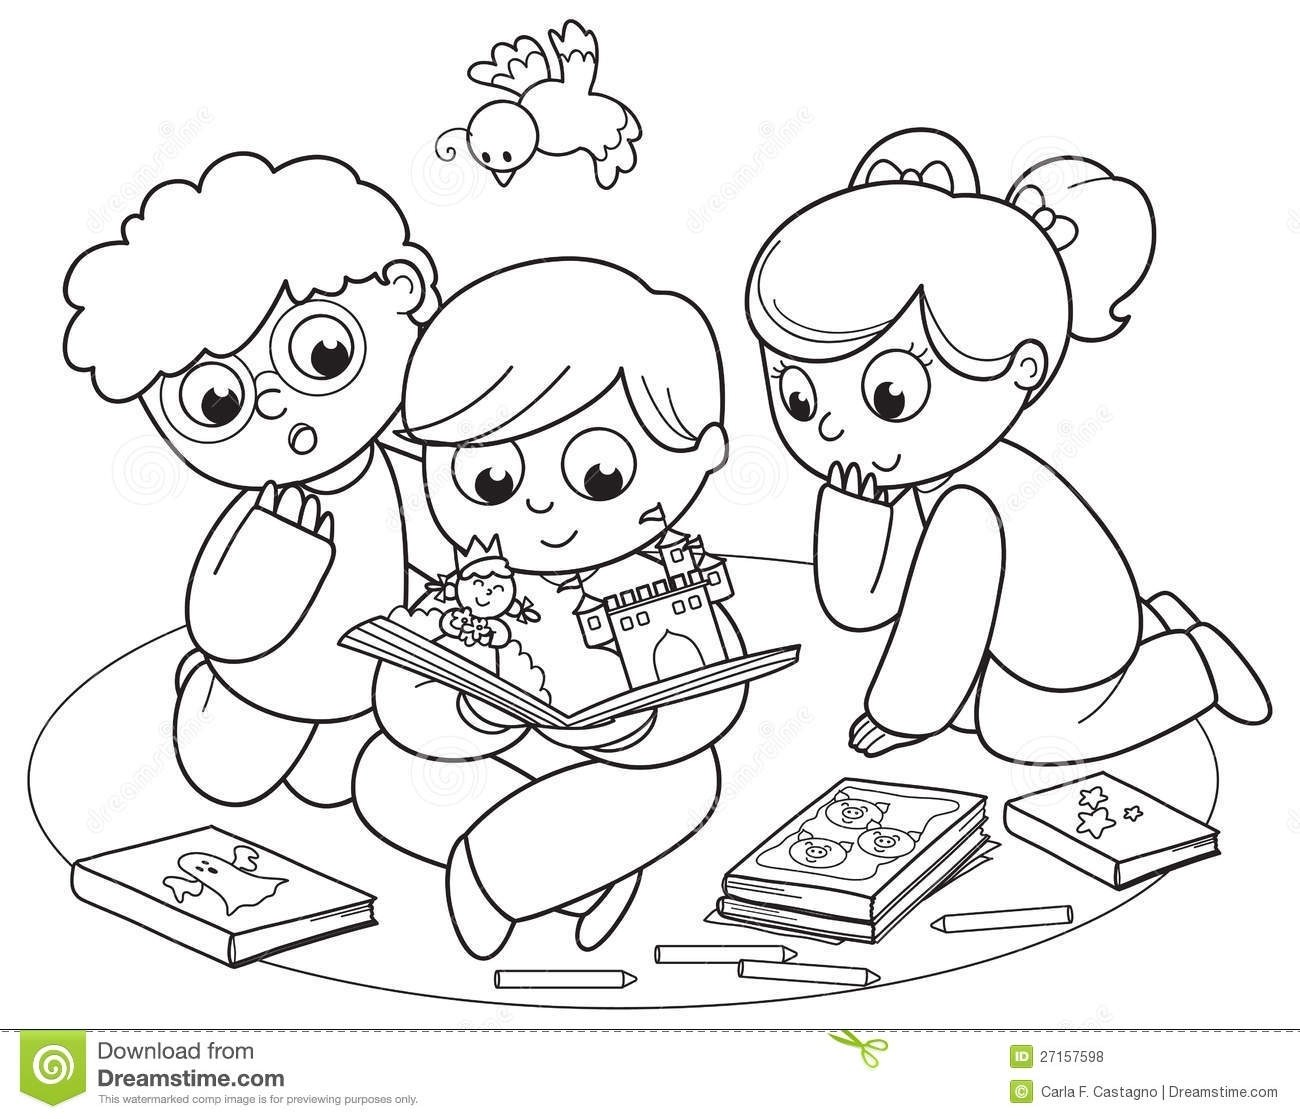 Kids reading books clipart black and white clip art library stock Children Reading Books Clipart Black And White regarding ... clip art library stock